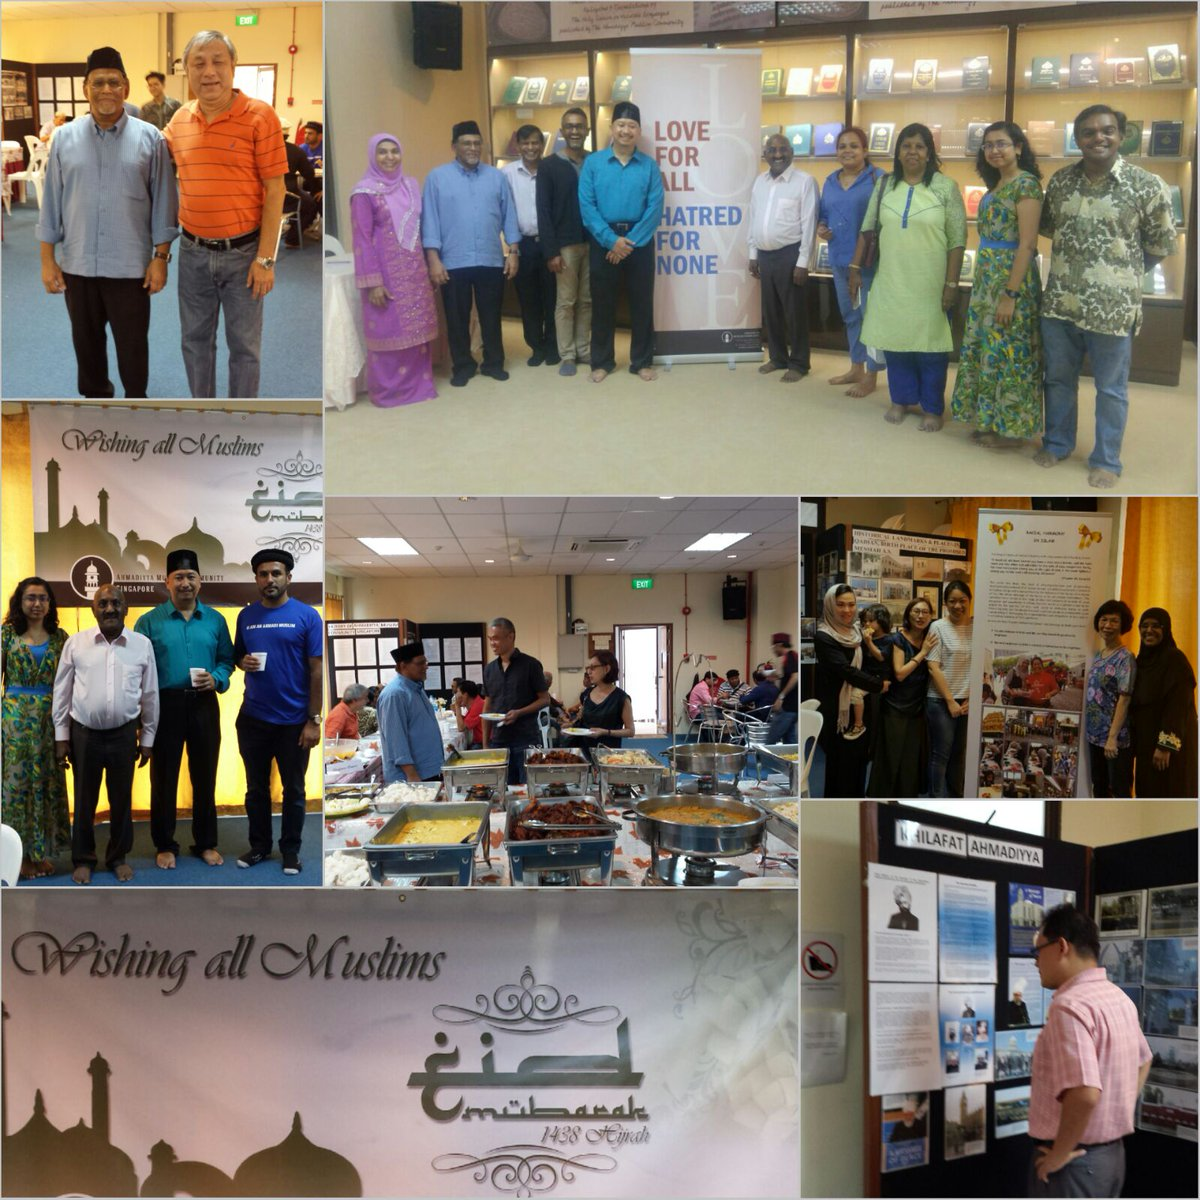 1.Friends of #Ahmadiyya Singapore shared an afternoon @ Taha Mosque in a warm multi-ethnic #Eid Gathering. #Love for All Hatred for None<br>http://pic.twitter.com/yzVq2vKa4m